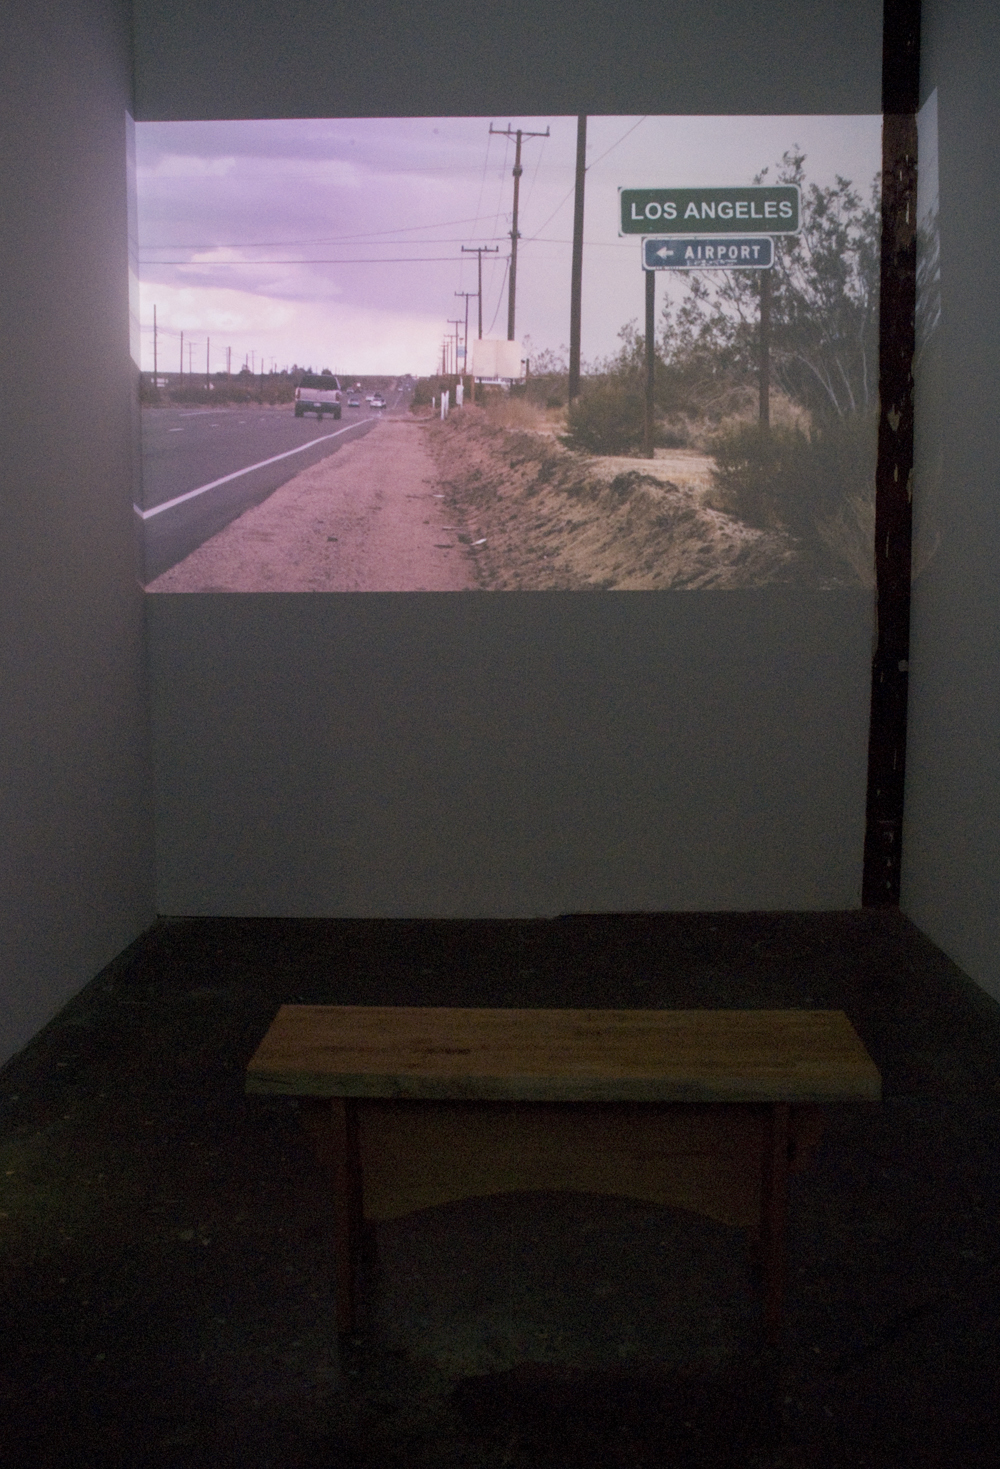 Third Party Installation Images 47_final.jpg